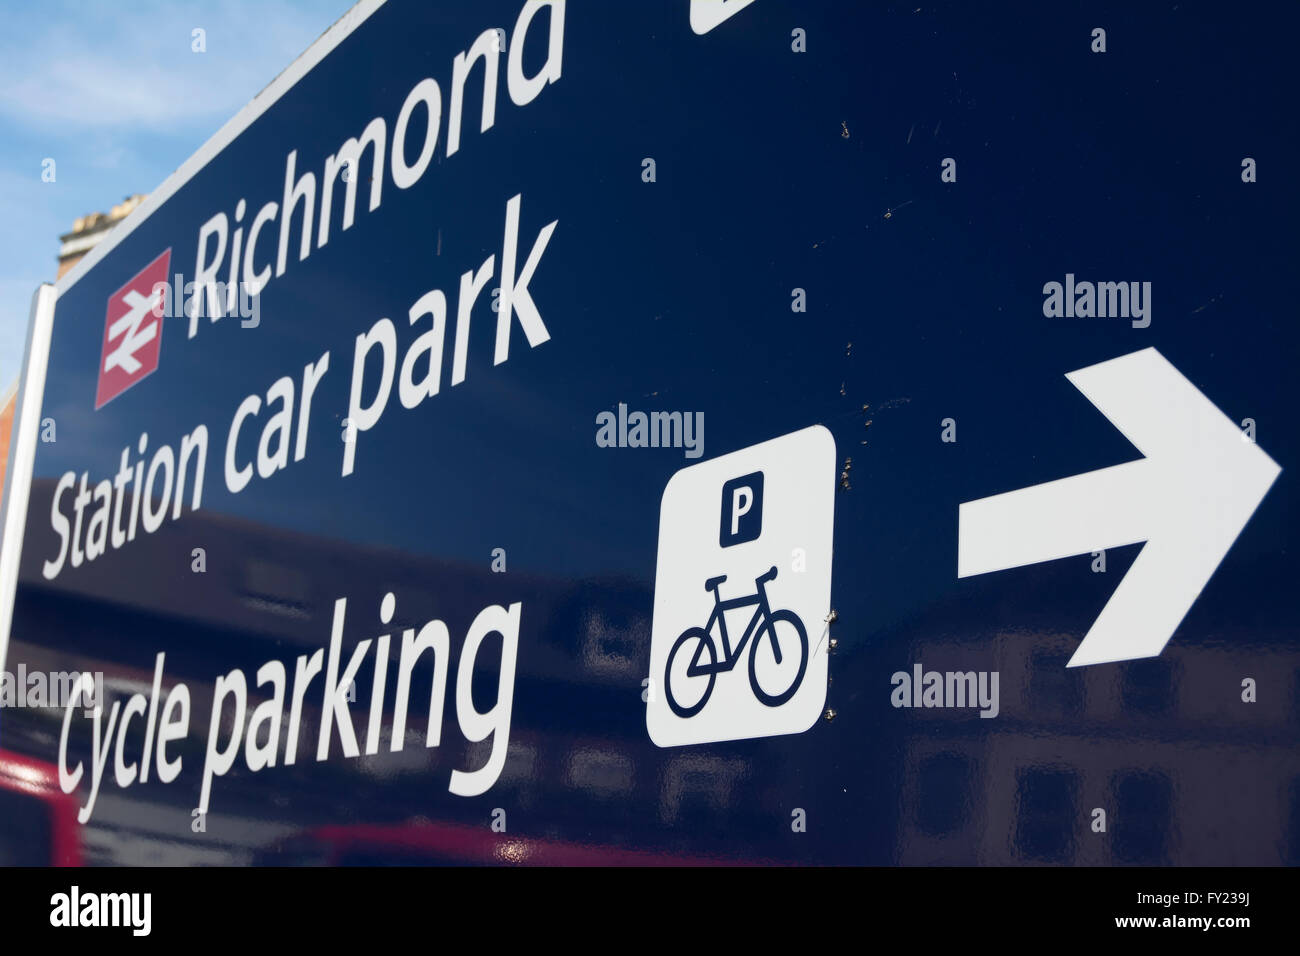 sign for cycle parking and car park at richmond station, richmond upon thames, surrey, england - Stock Image